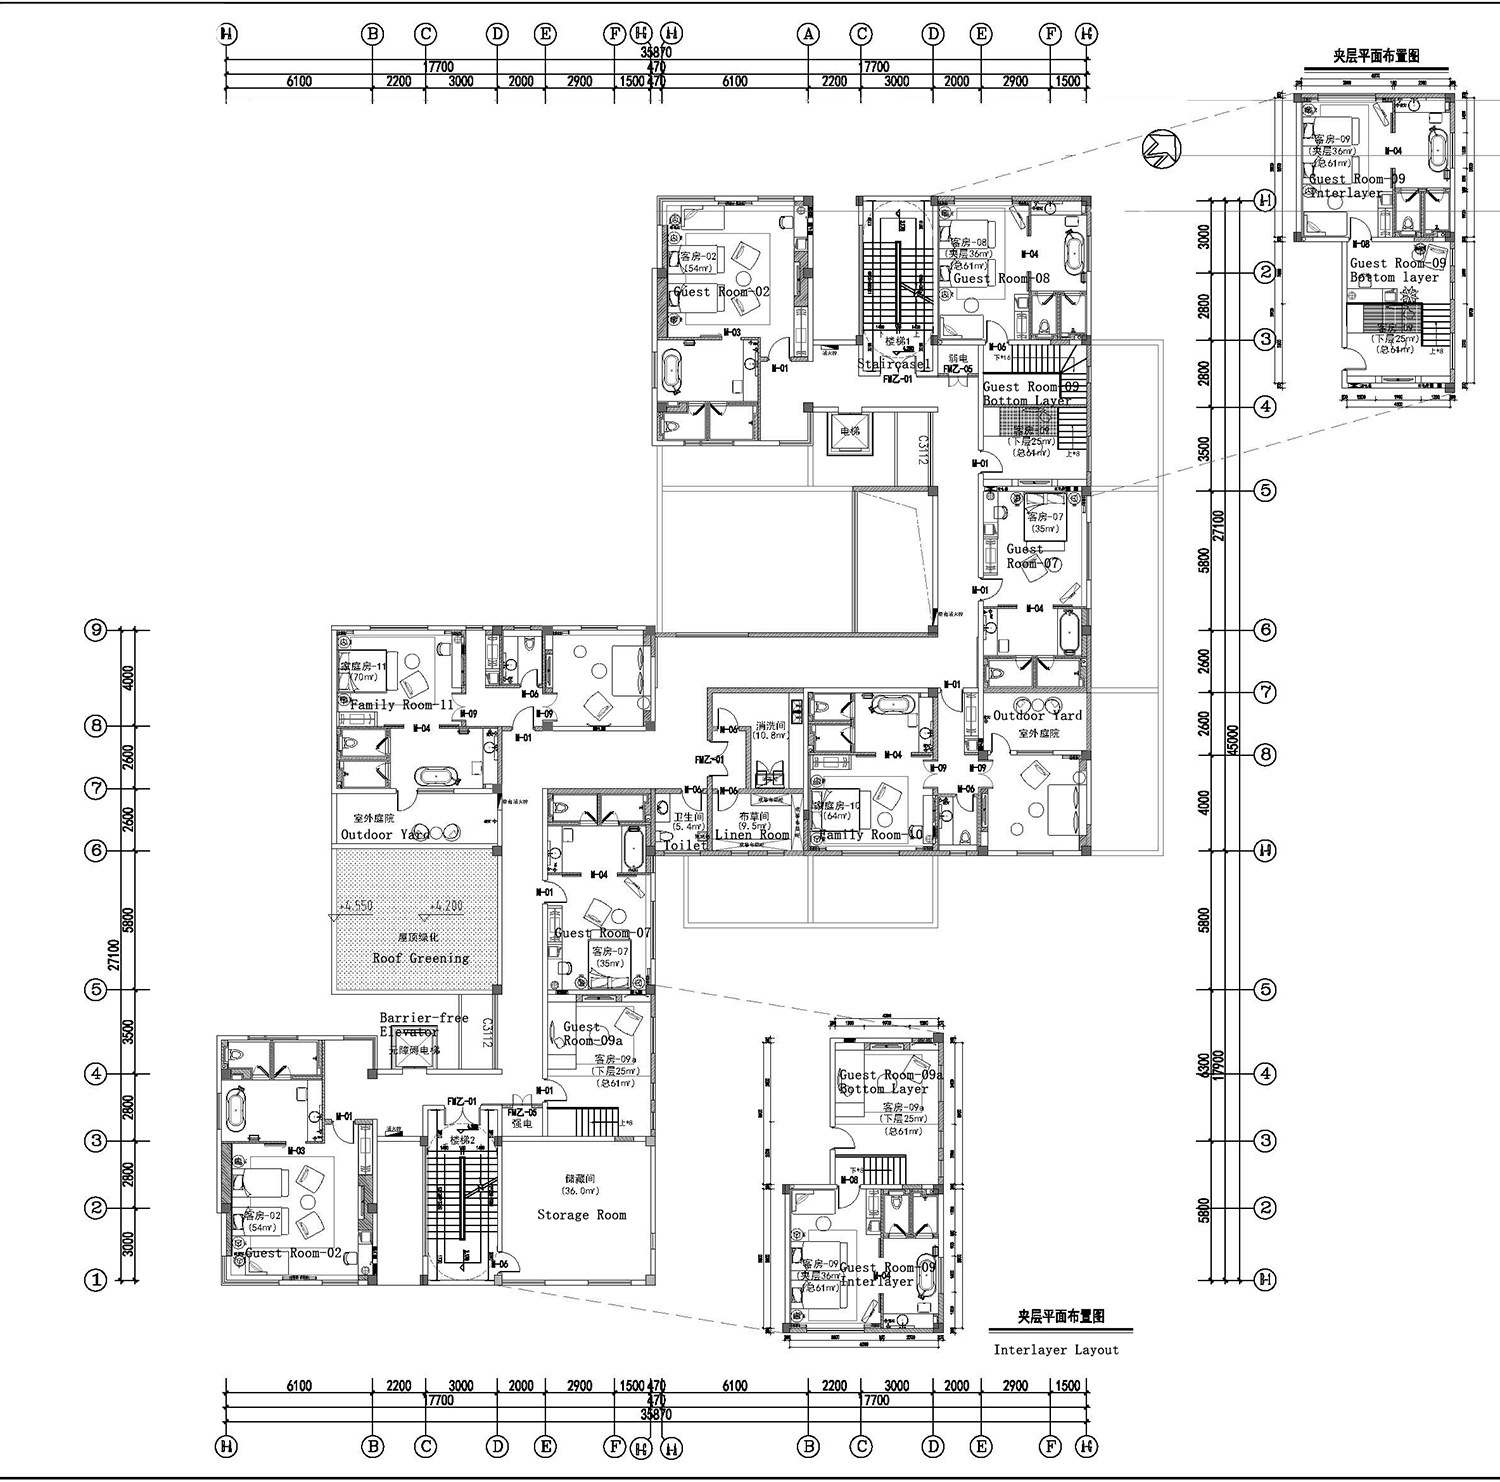 Building 2 2F layout Wei Sun}